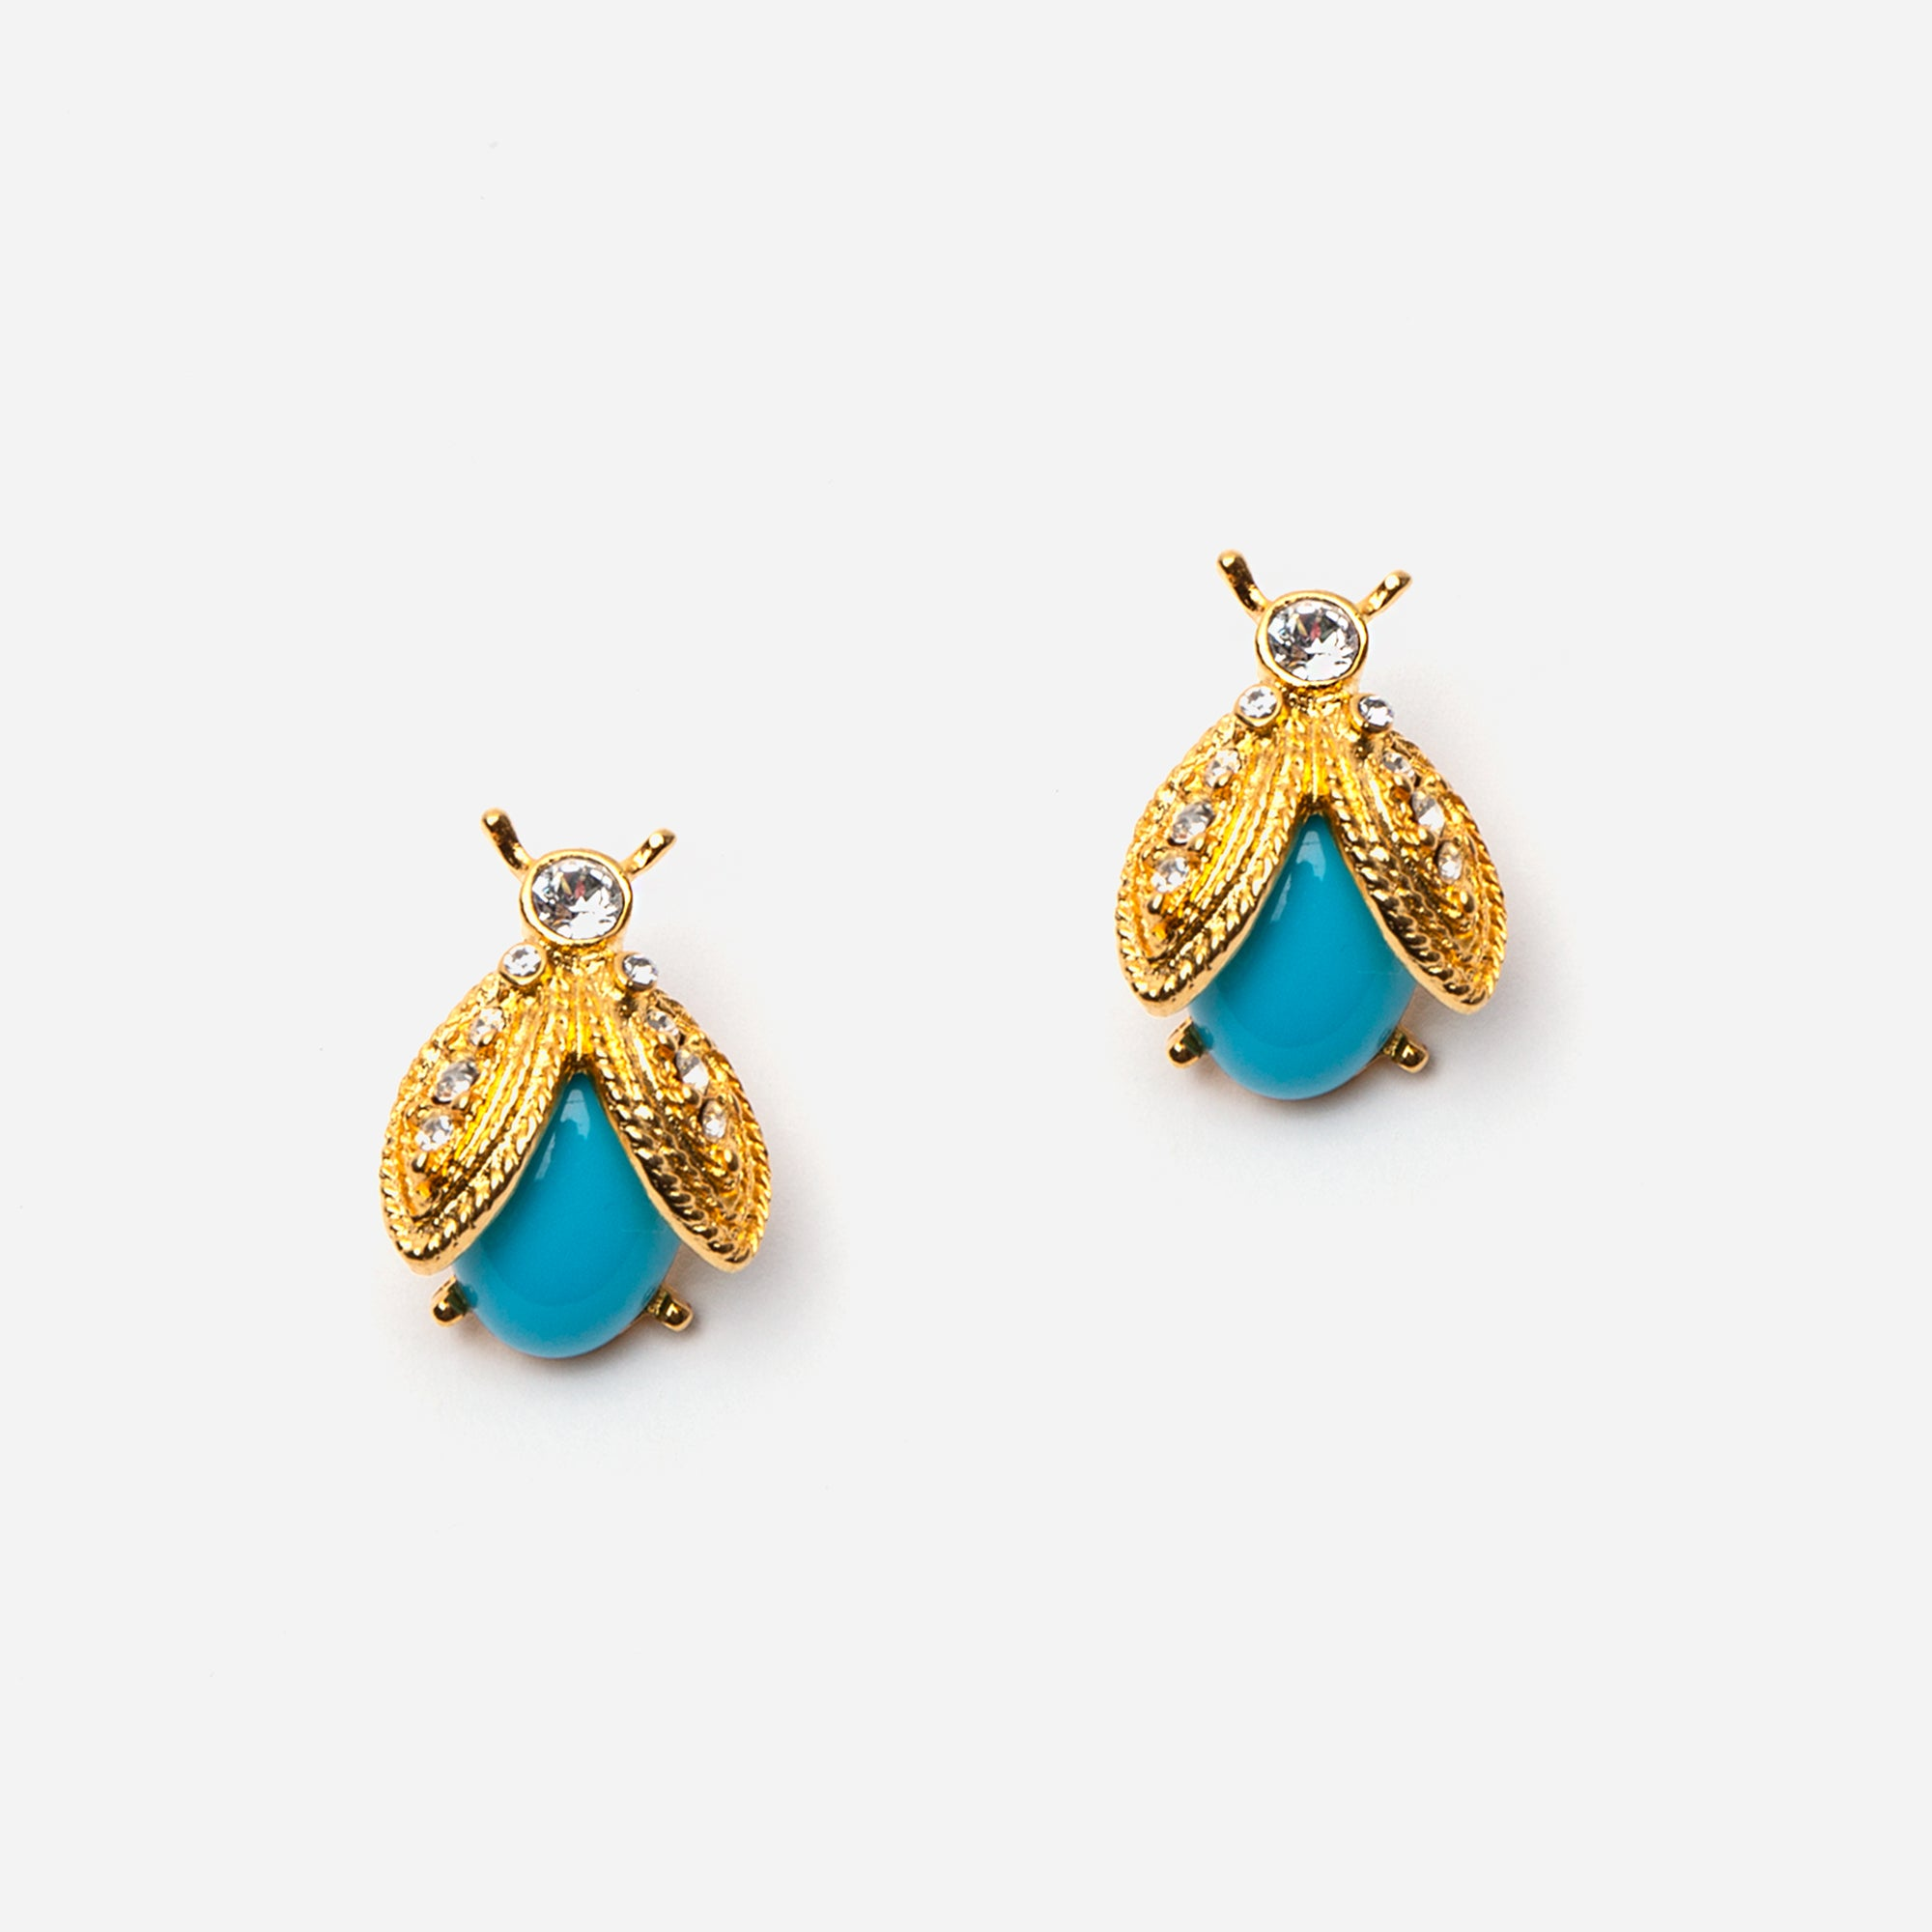 Turquoise Bee Earrings